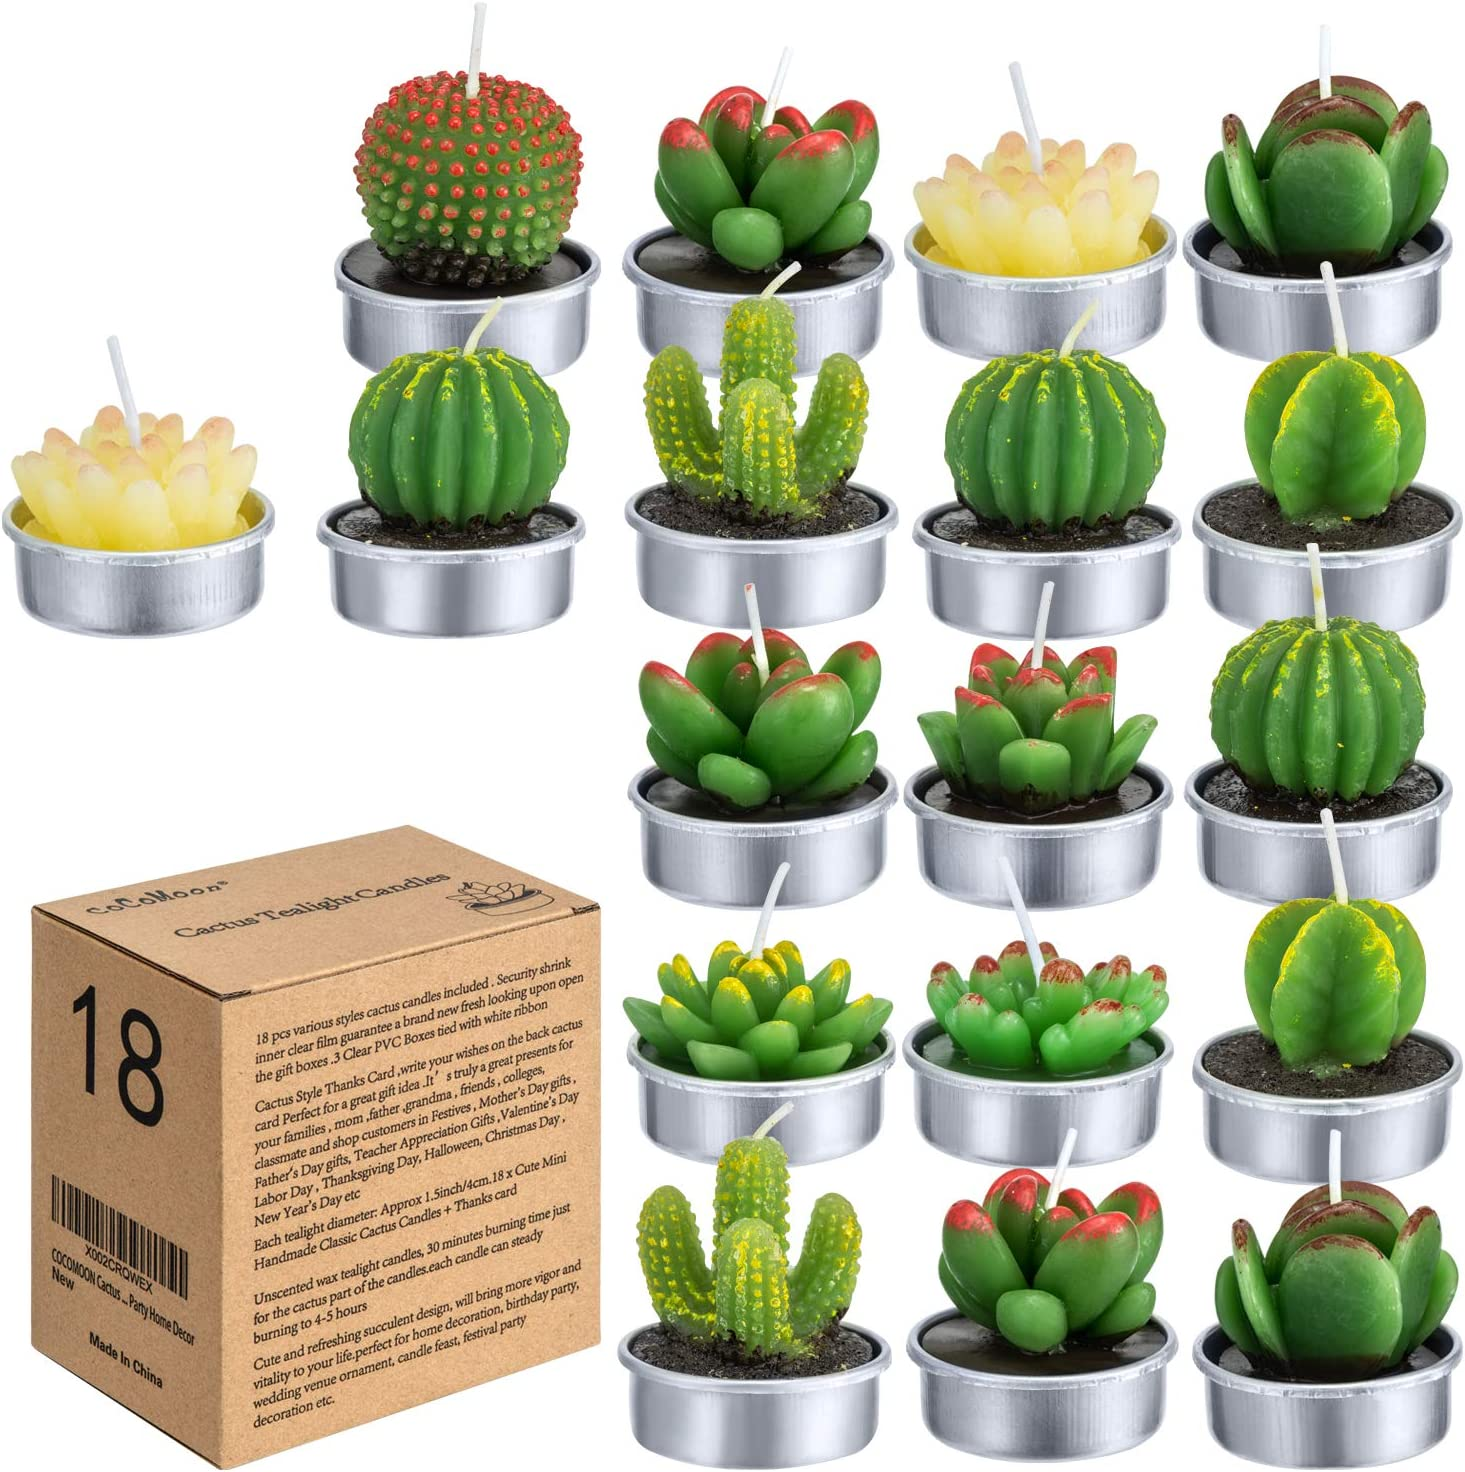 Cactus Tealight Candles(18 Pcs Gift Boxed), Artificial Succulents Decorative Tea Light Candles,Perfect for Birthday Wedding Party Home Decor